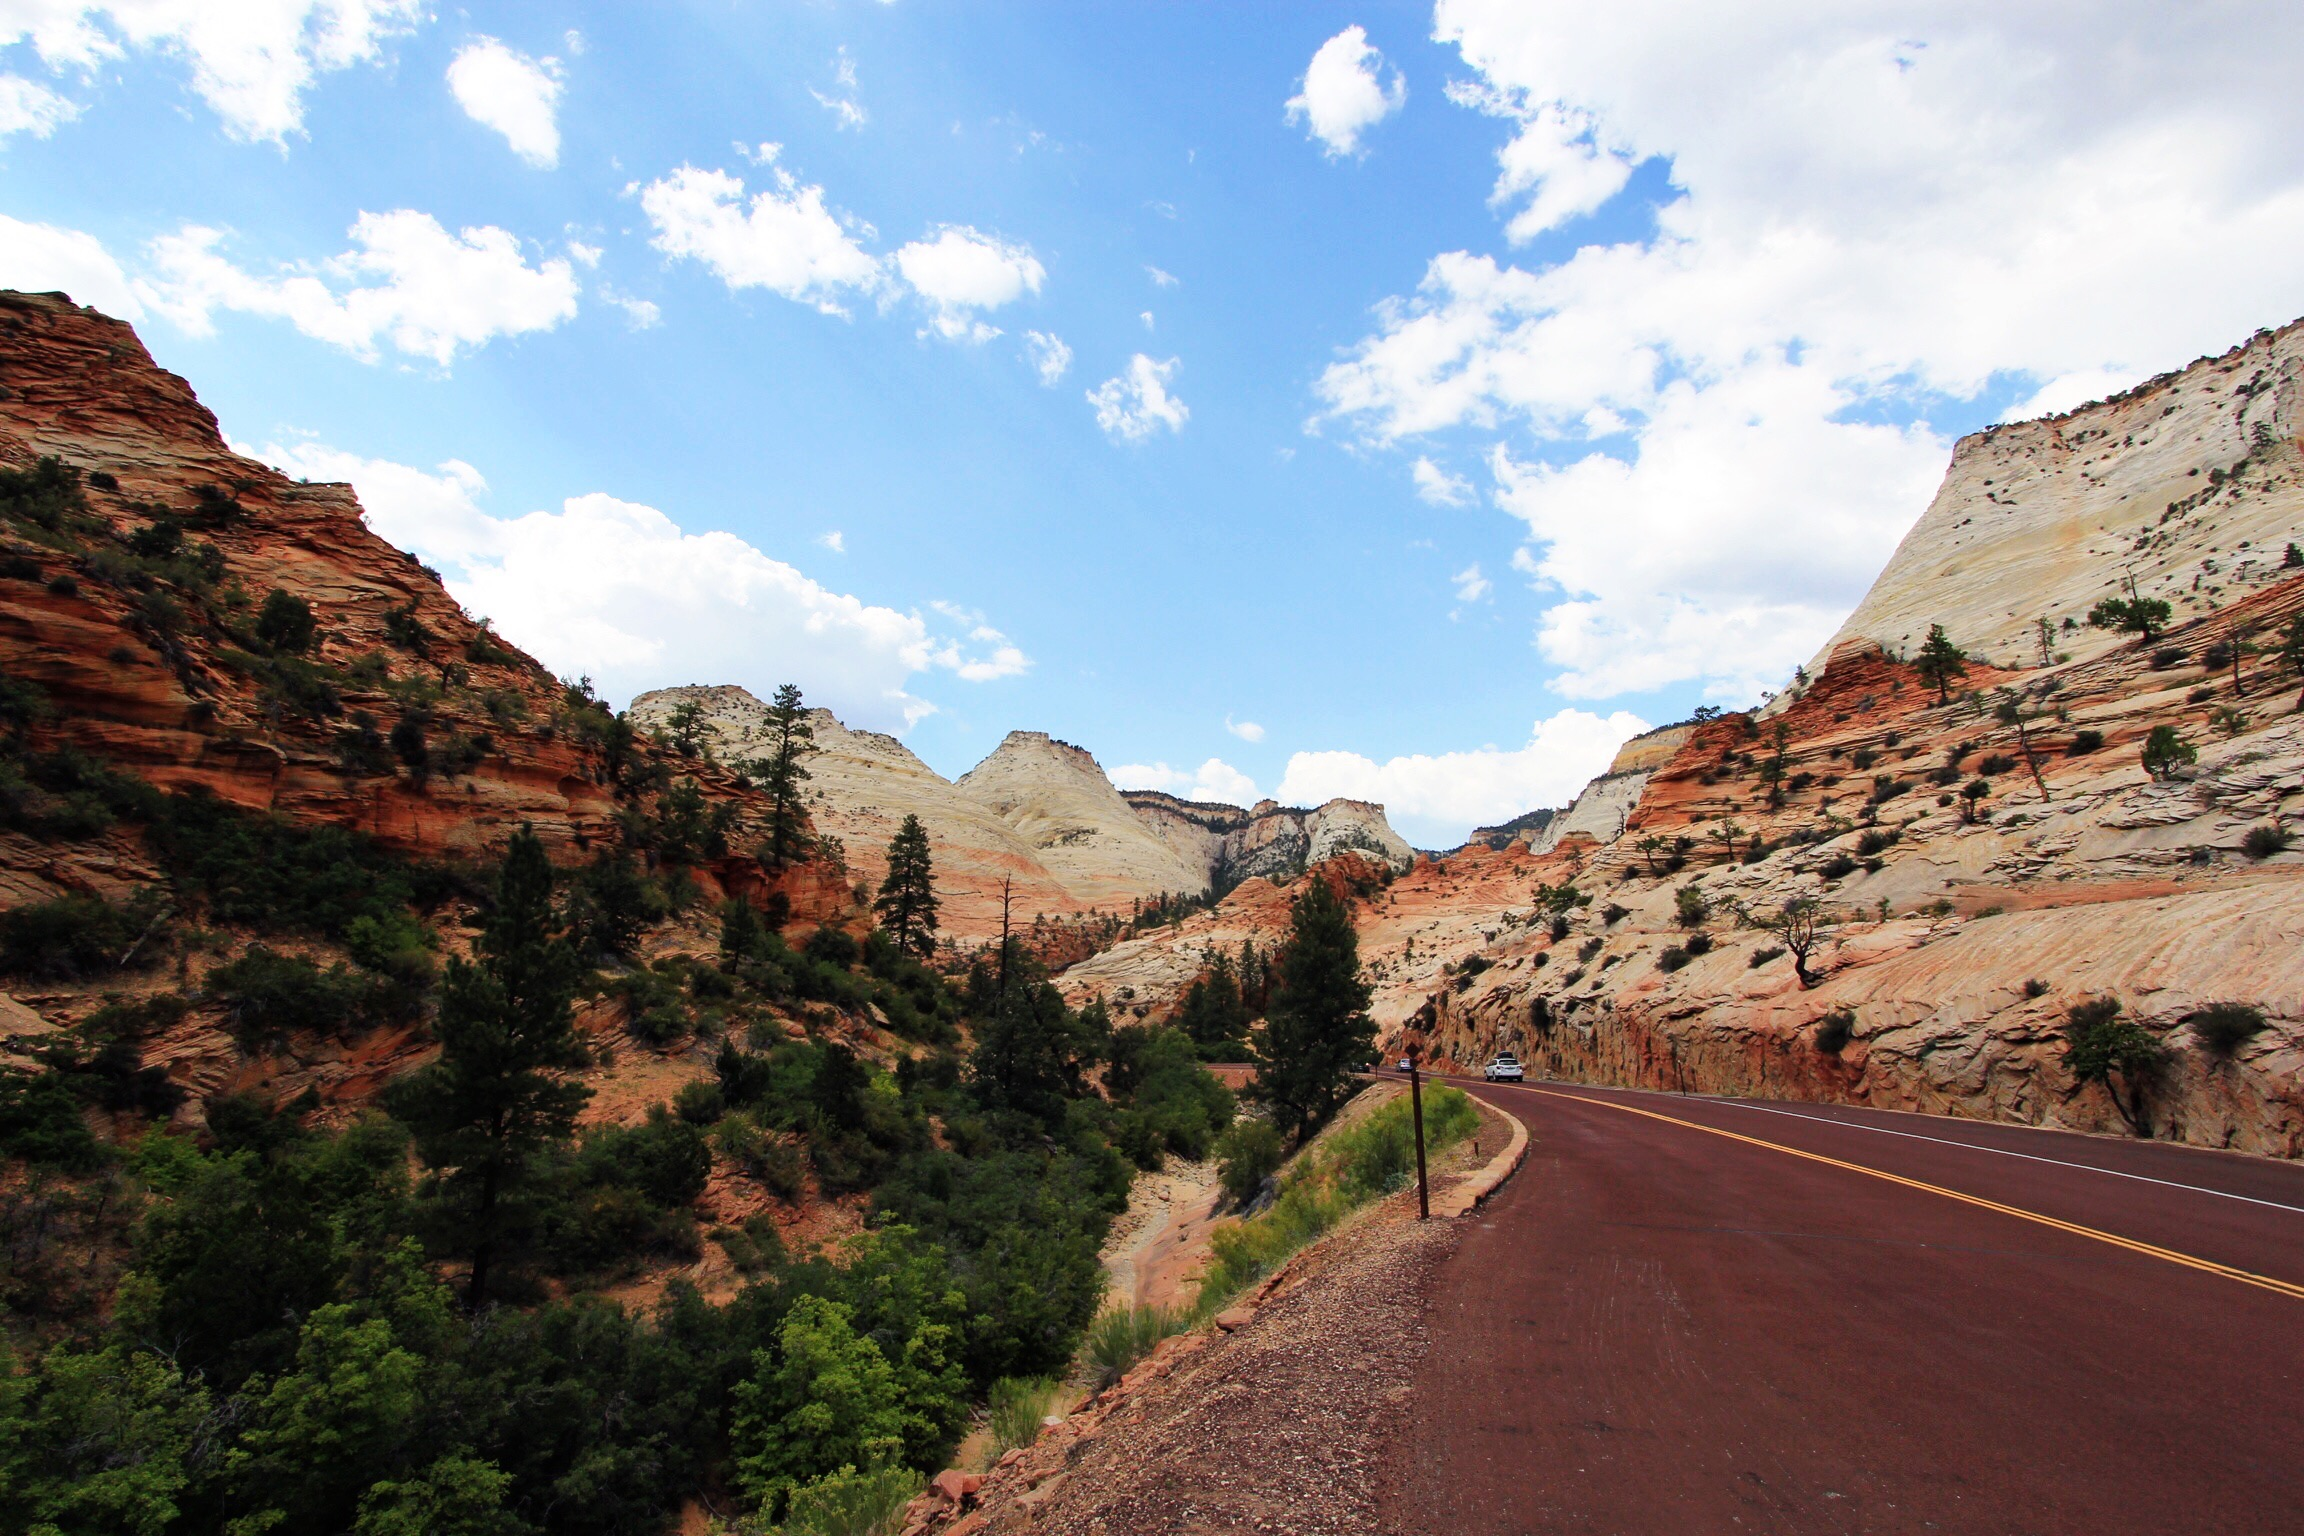 On the road out of Zion